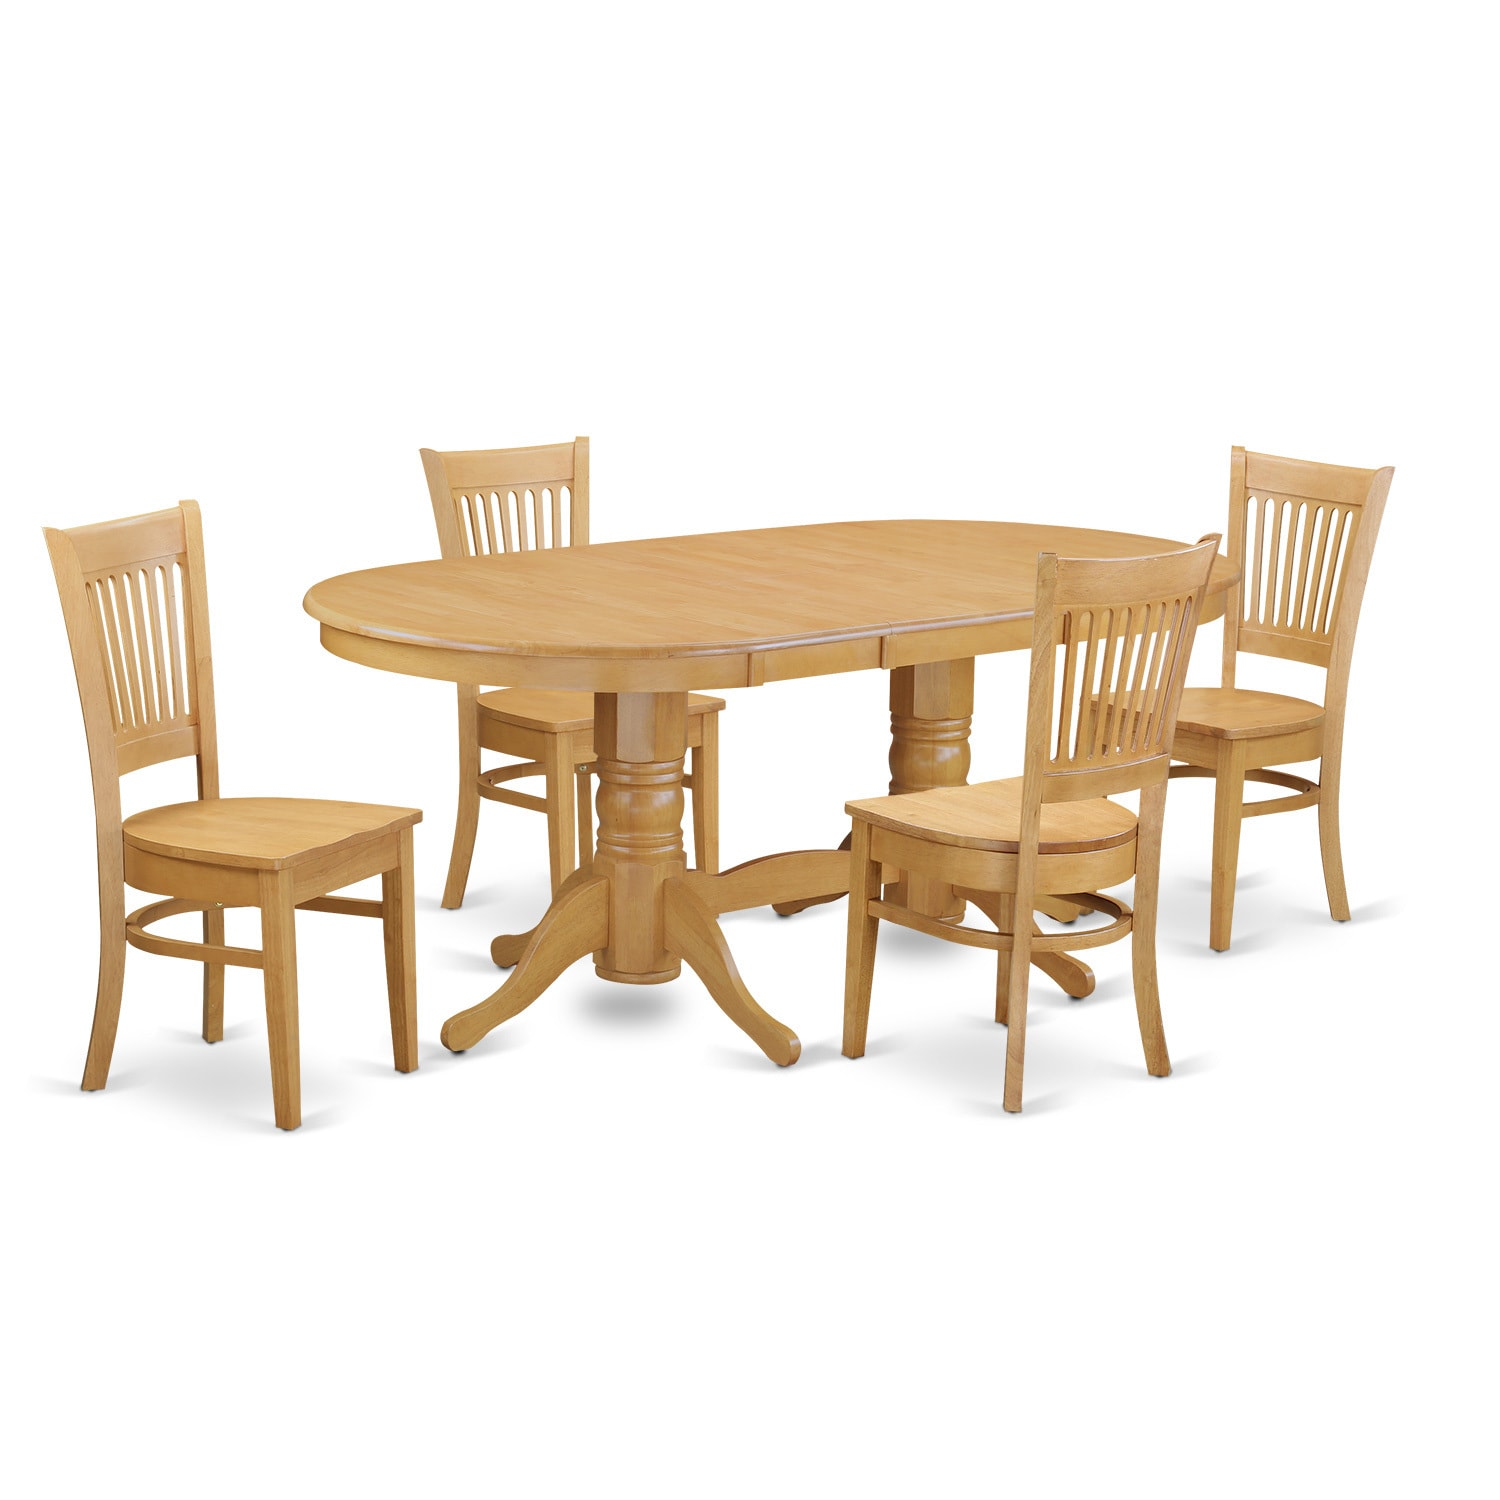 Shop vancouver vanc5 oak oak rubberwood dining table with leaf and 4 chairs free shipping today overstock com 11967615